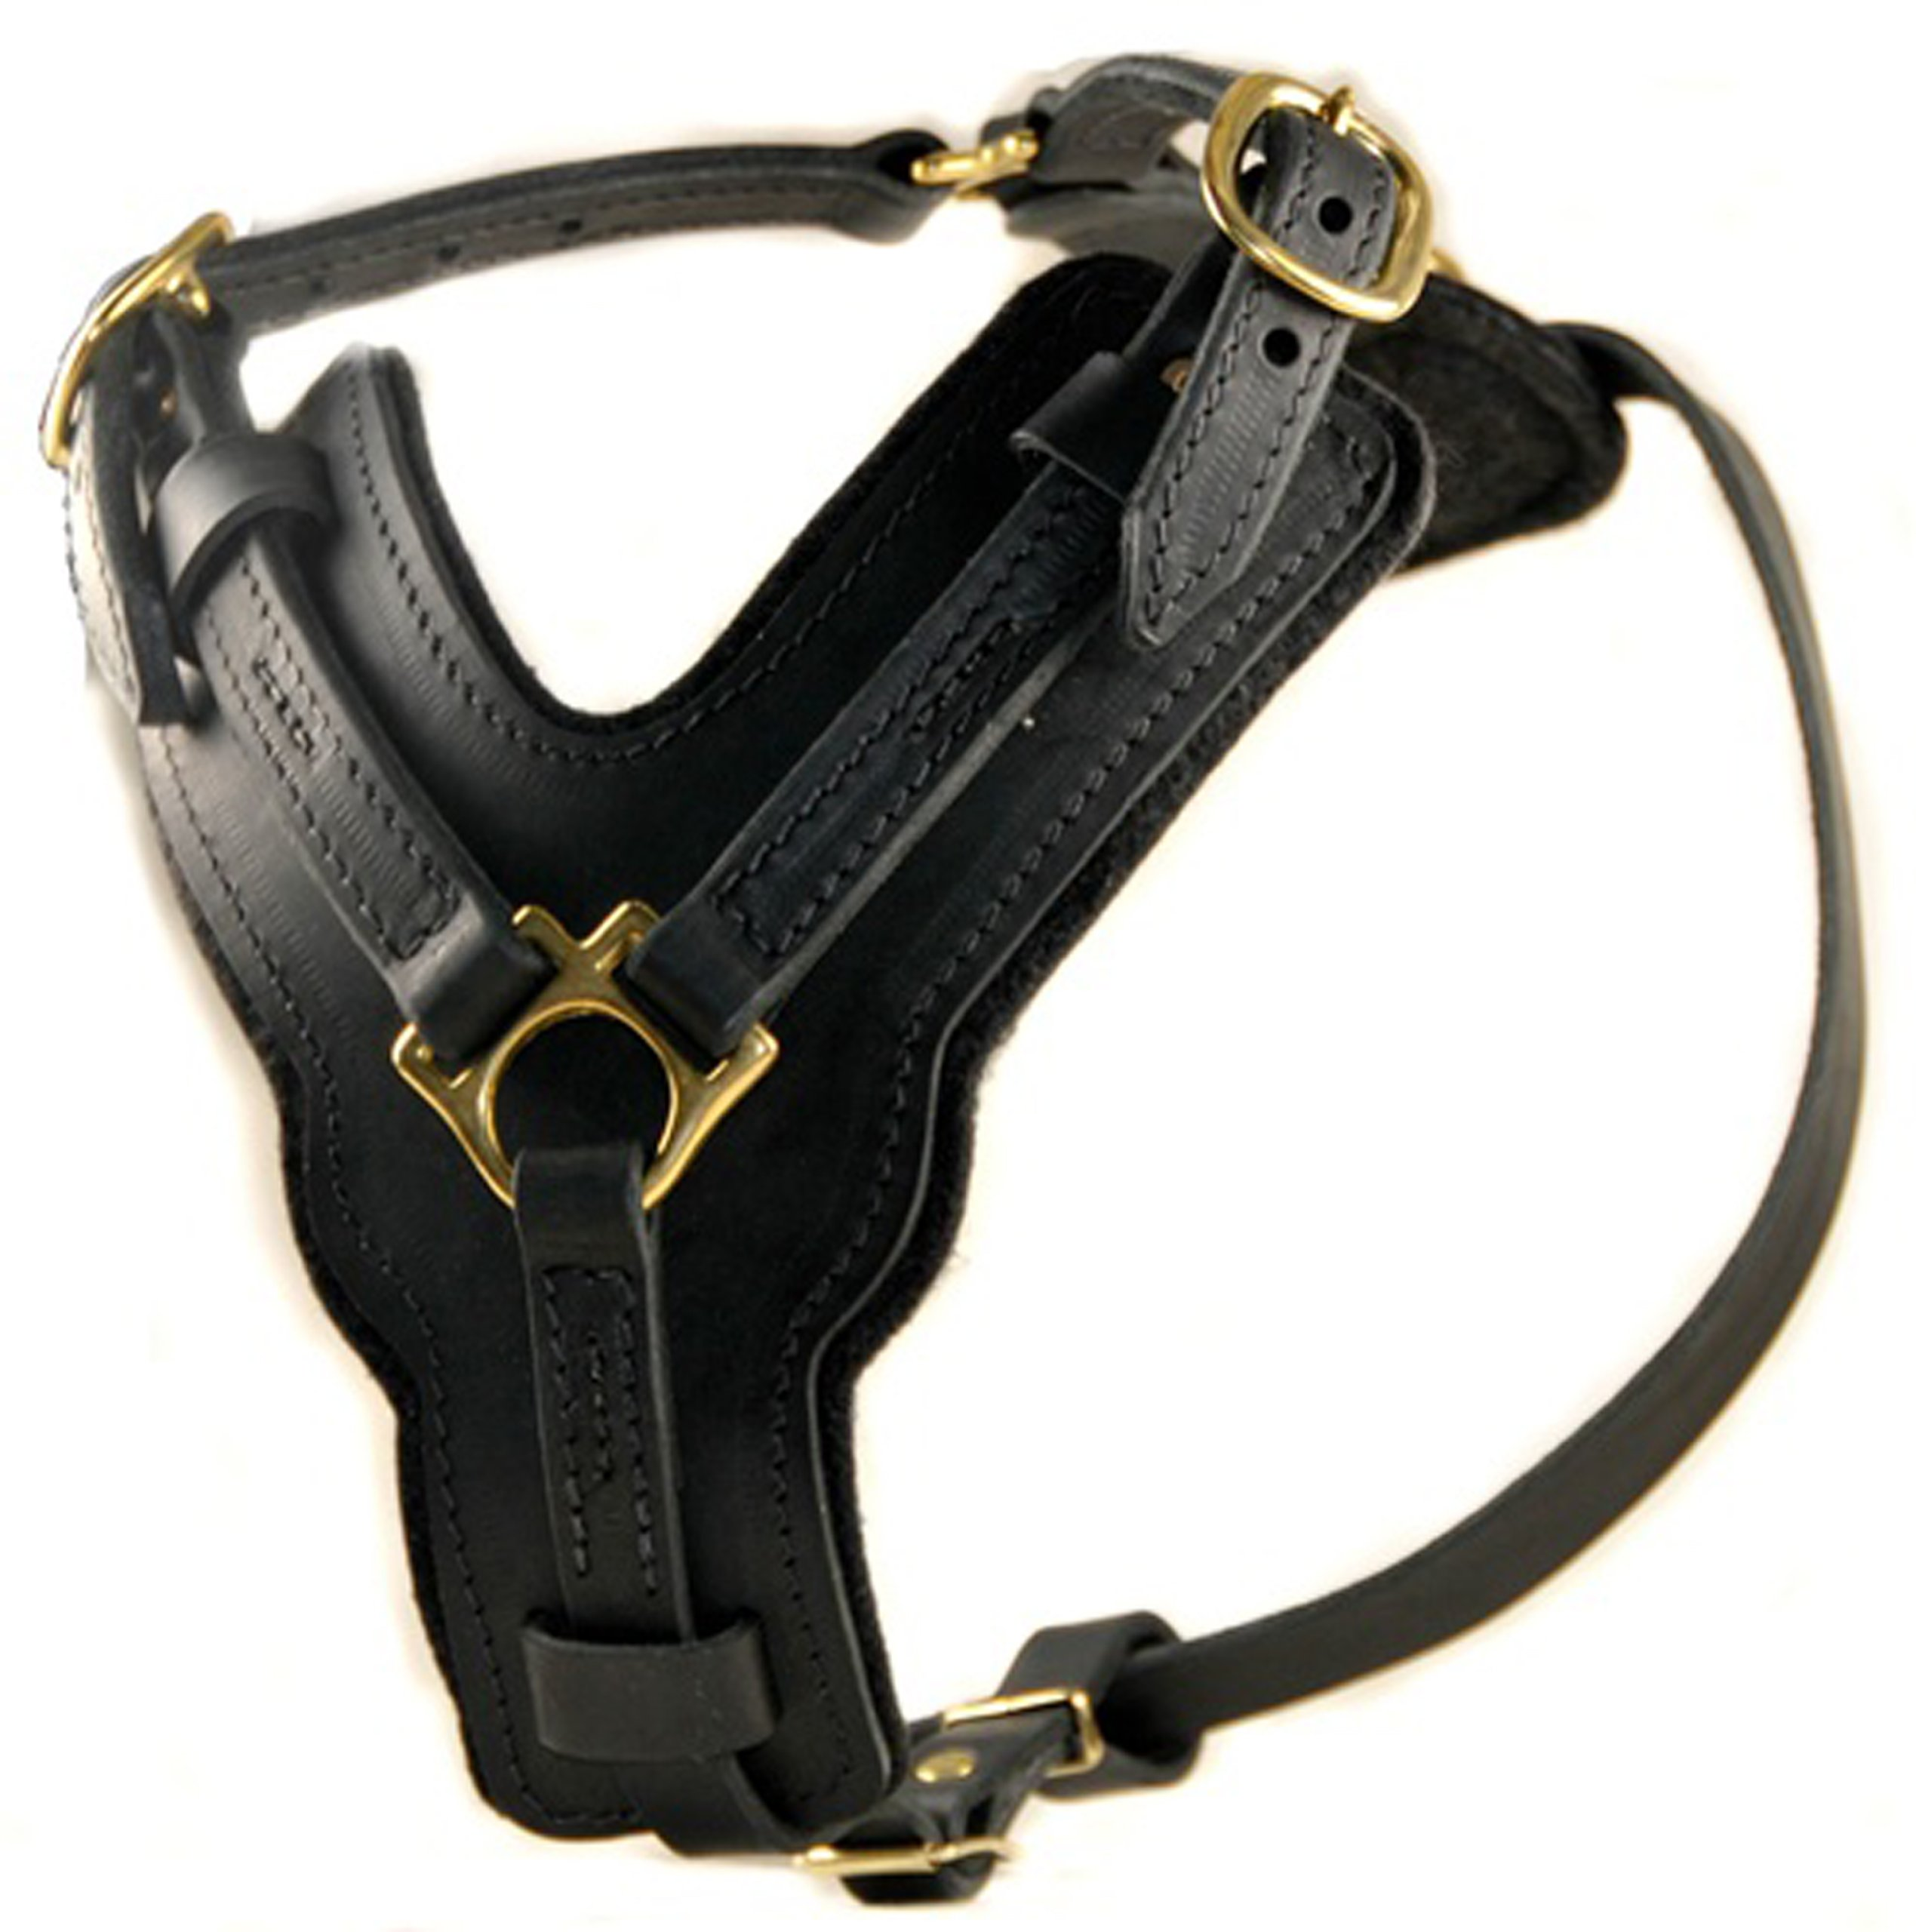 Dean and Tyler The Victory Solid Brass Hardware Dog Harness, Black, Medium - Fits Girth Size 25-Inch to 36-Inch by Dean & Tyler (Image #1)